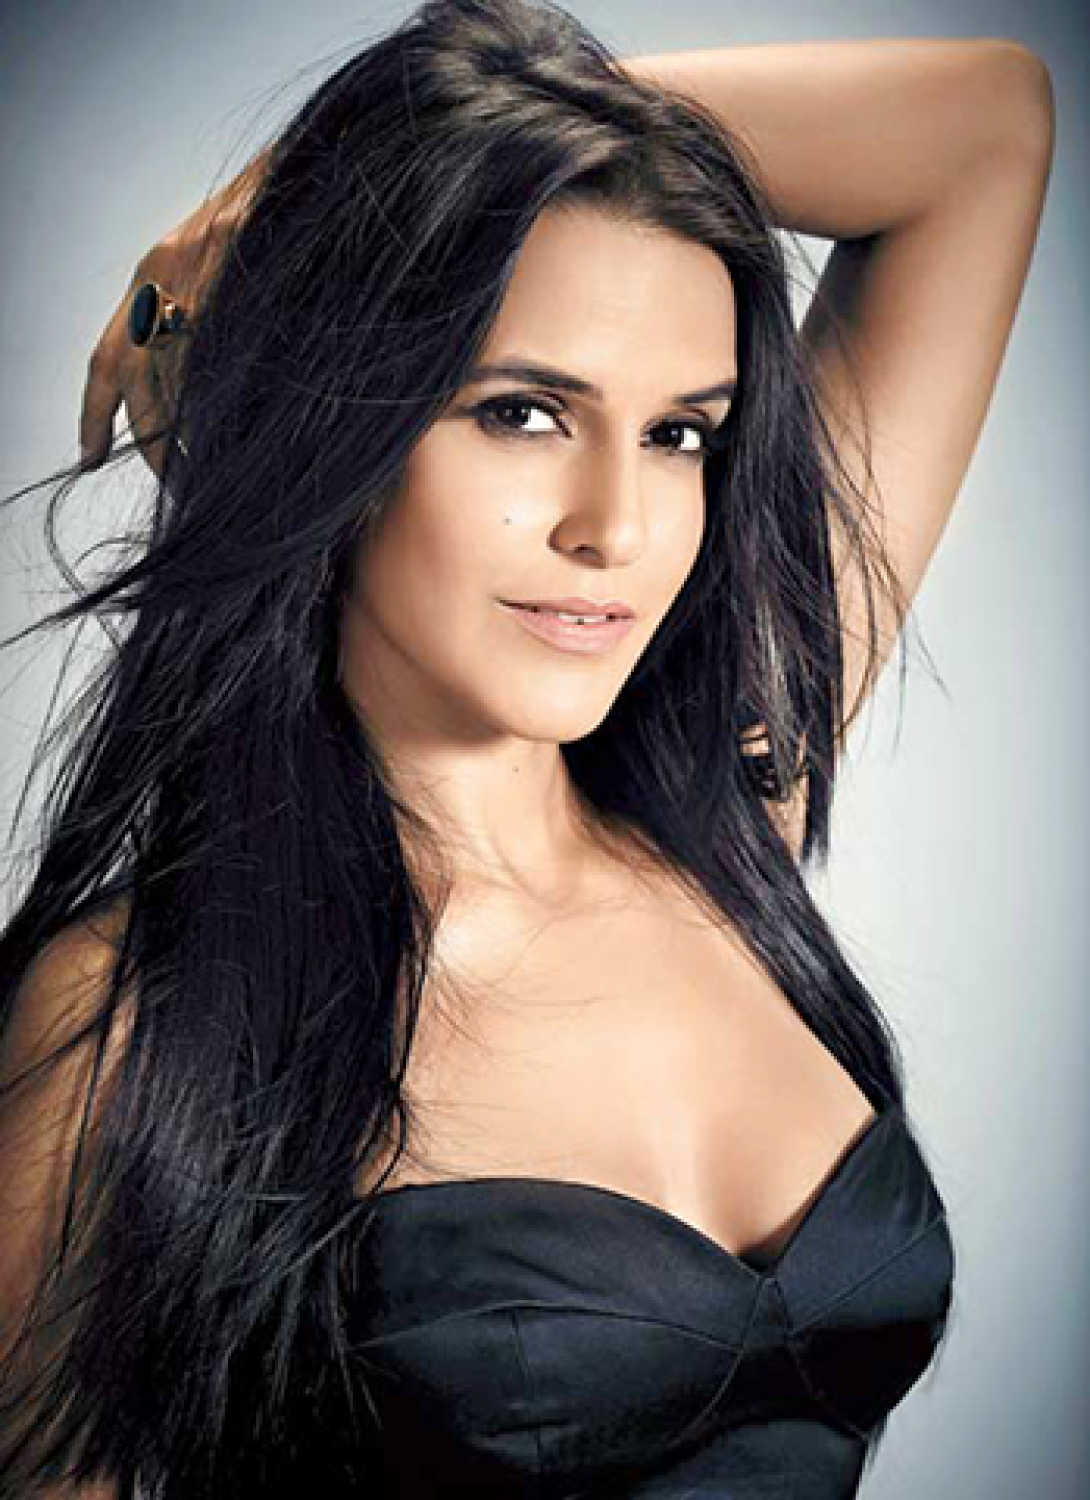 Neha Dhupia naked (35 foto and video), Topless, Bikini, Boobs, butt 2020